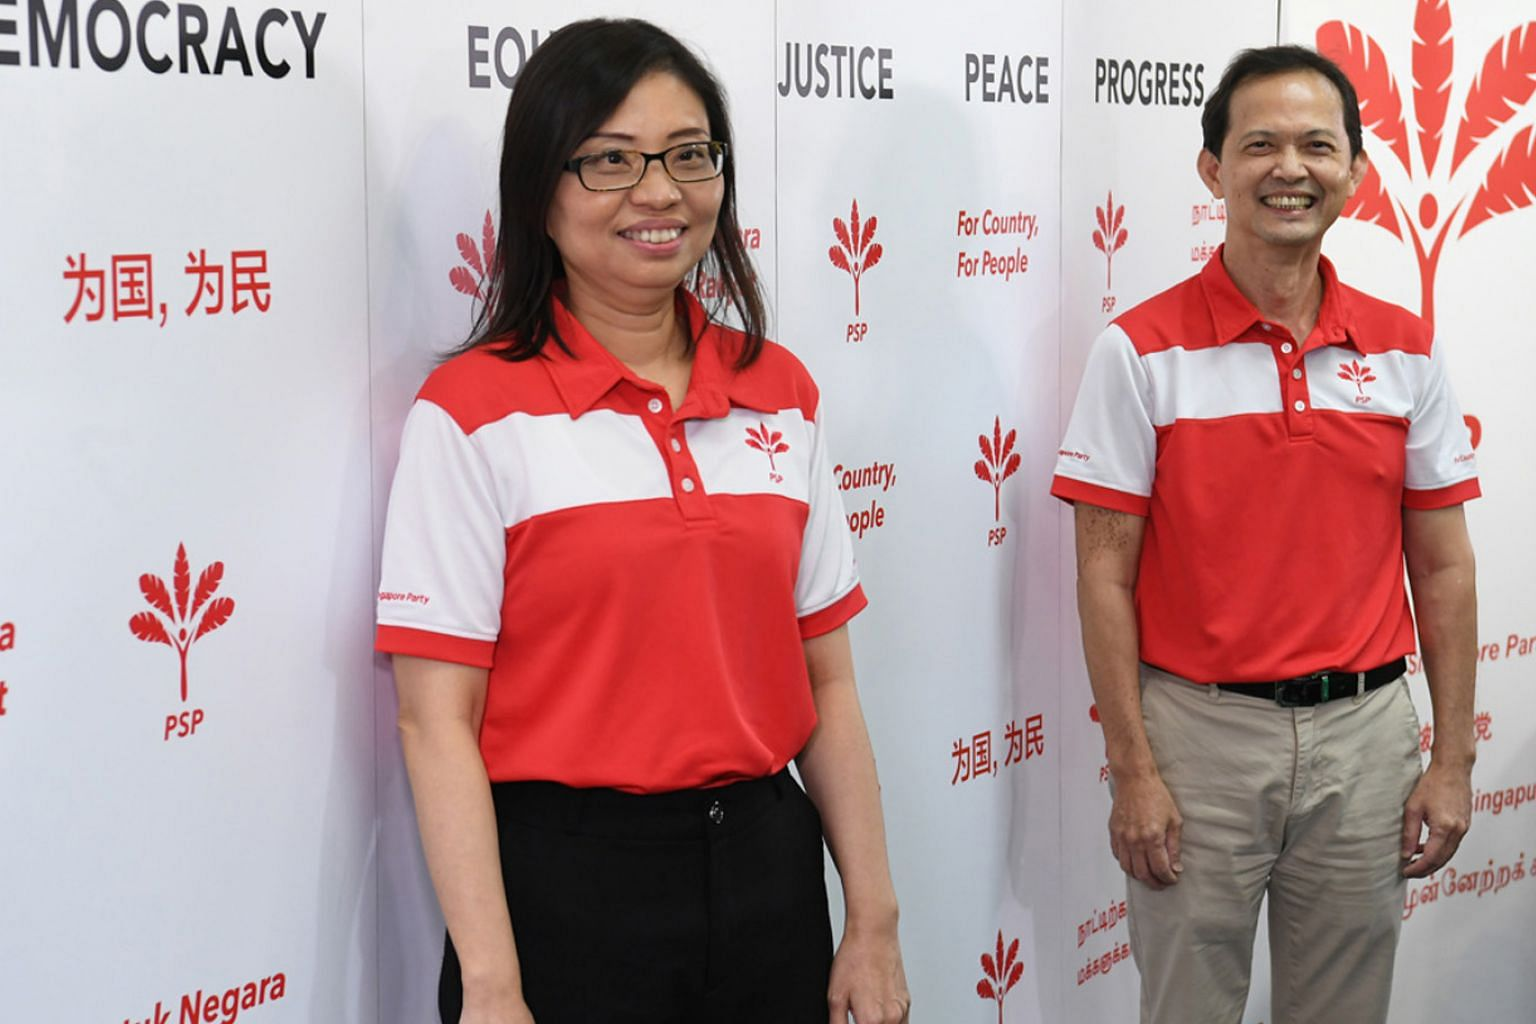 Progress Singapore Party's vice-chairman Hazel Poa and assistant secretary-general Leong Mun Wai at yesterday's press conference. Both were on the party's West Coast GRC slate, which secured 48.31 per cent of the votes against the People's Action Par